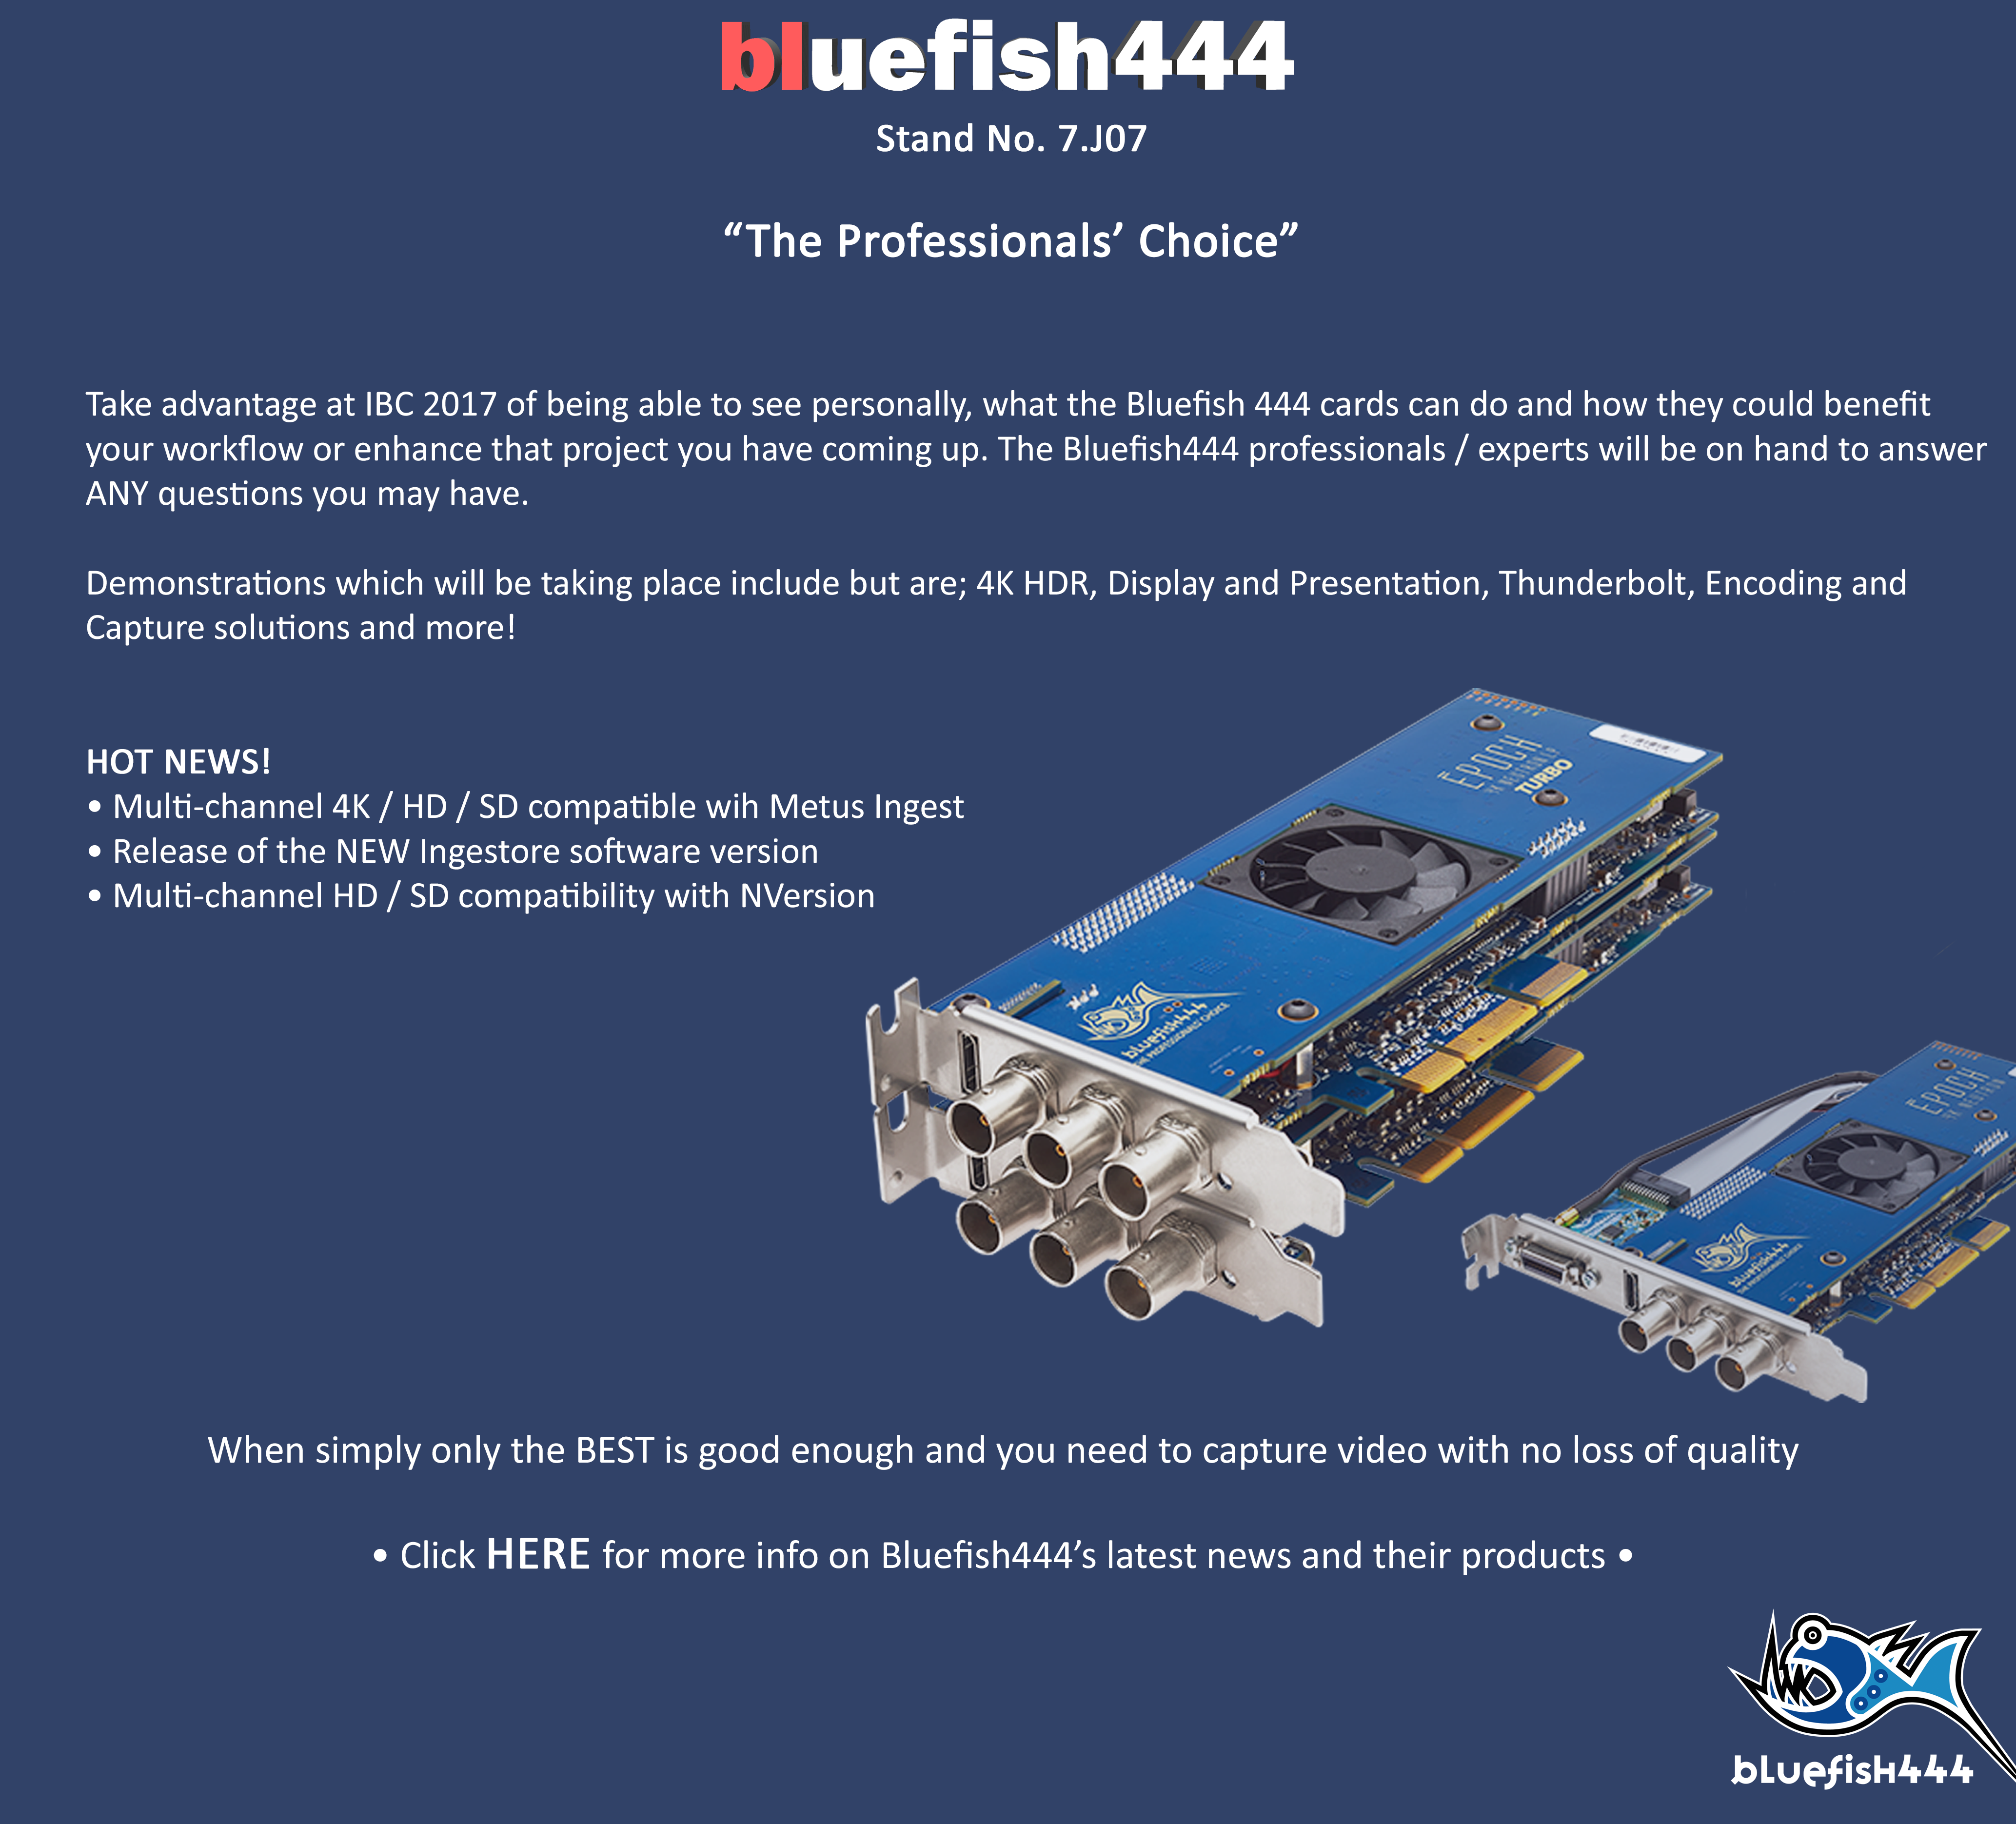 What To See At IBC 2017_Bluefish444_Uncompressed SDI Video Capture Cards